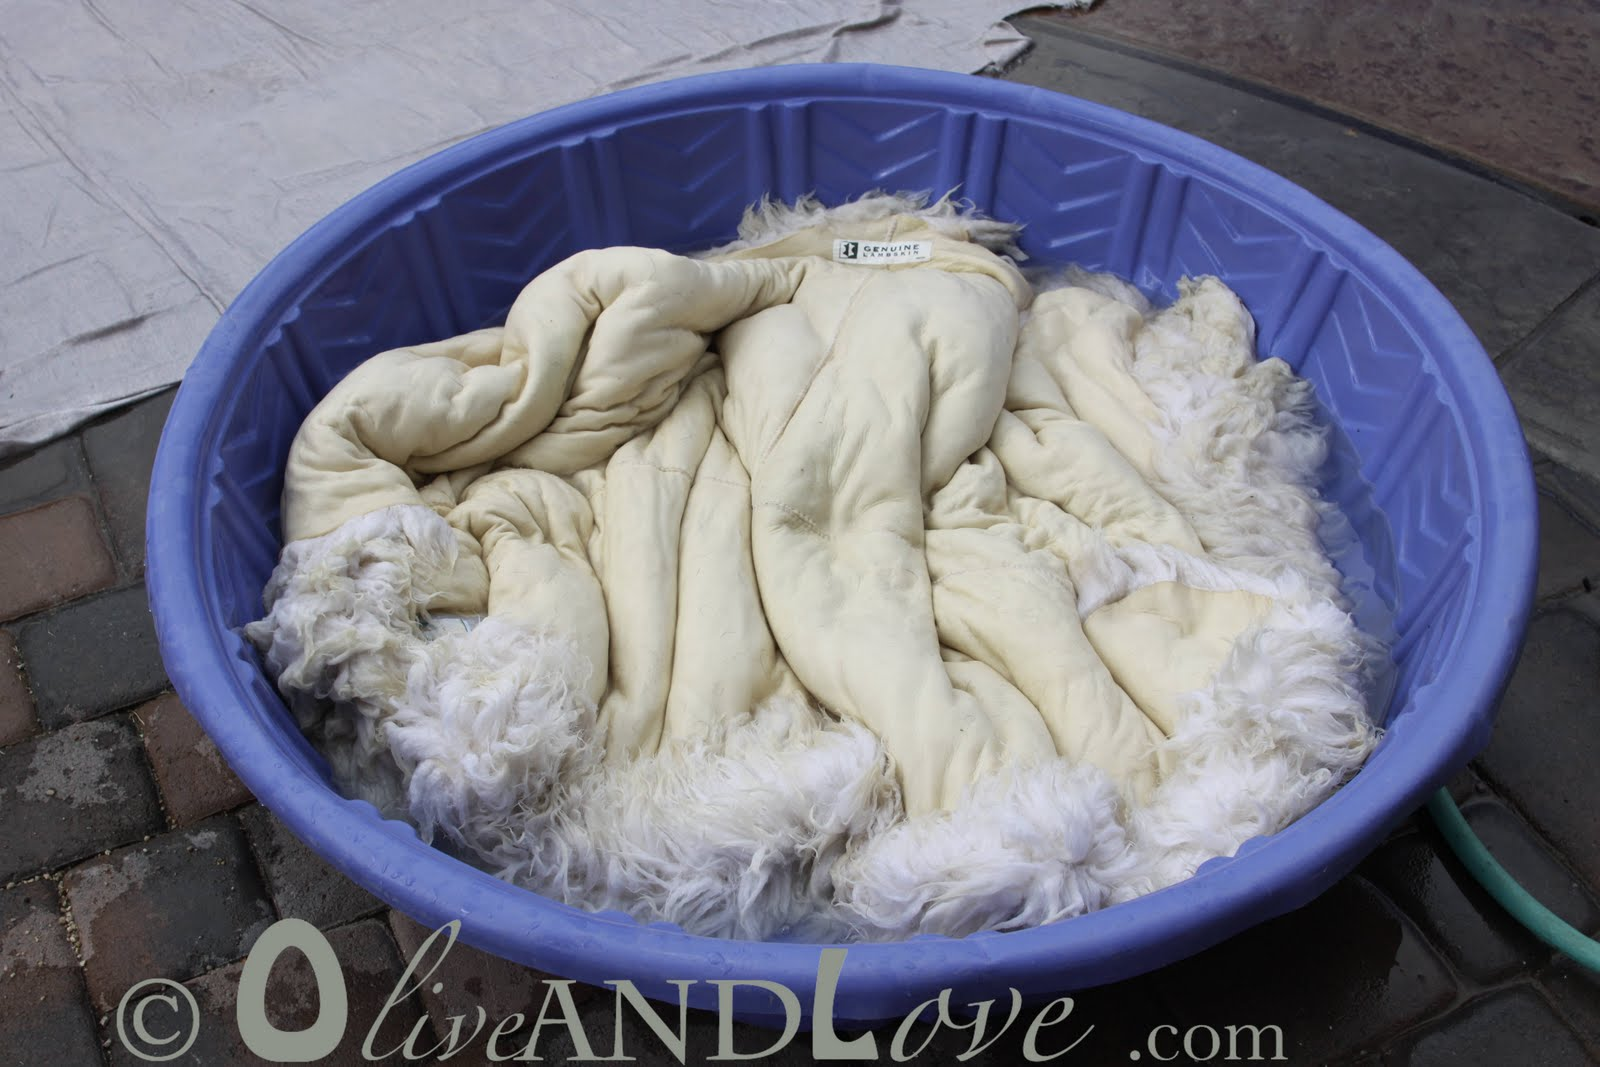 Olive And Love Washing A Sheepskin Rug